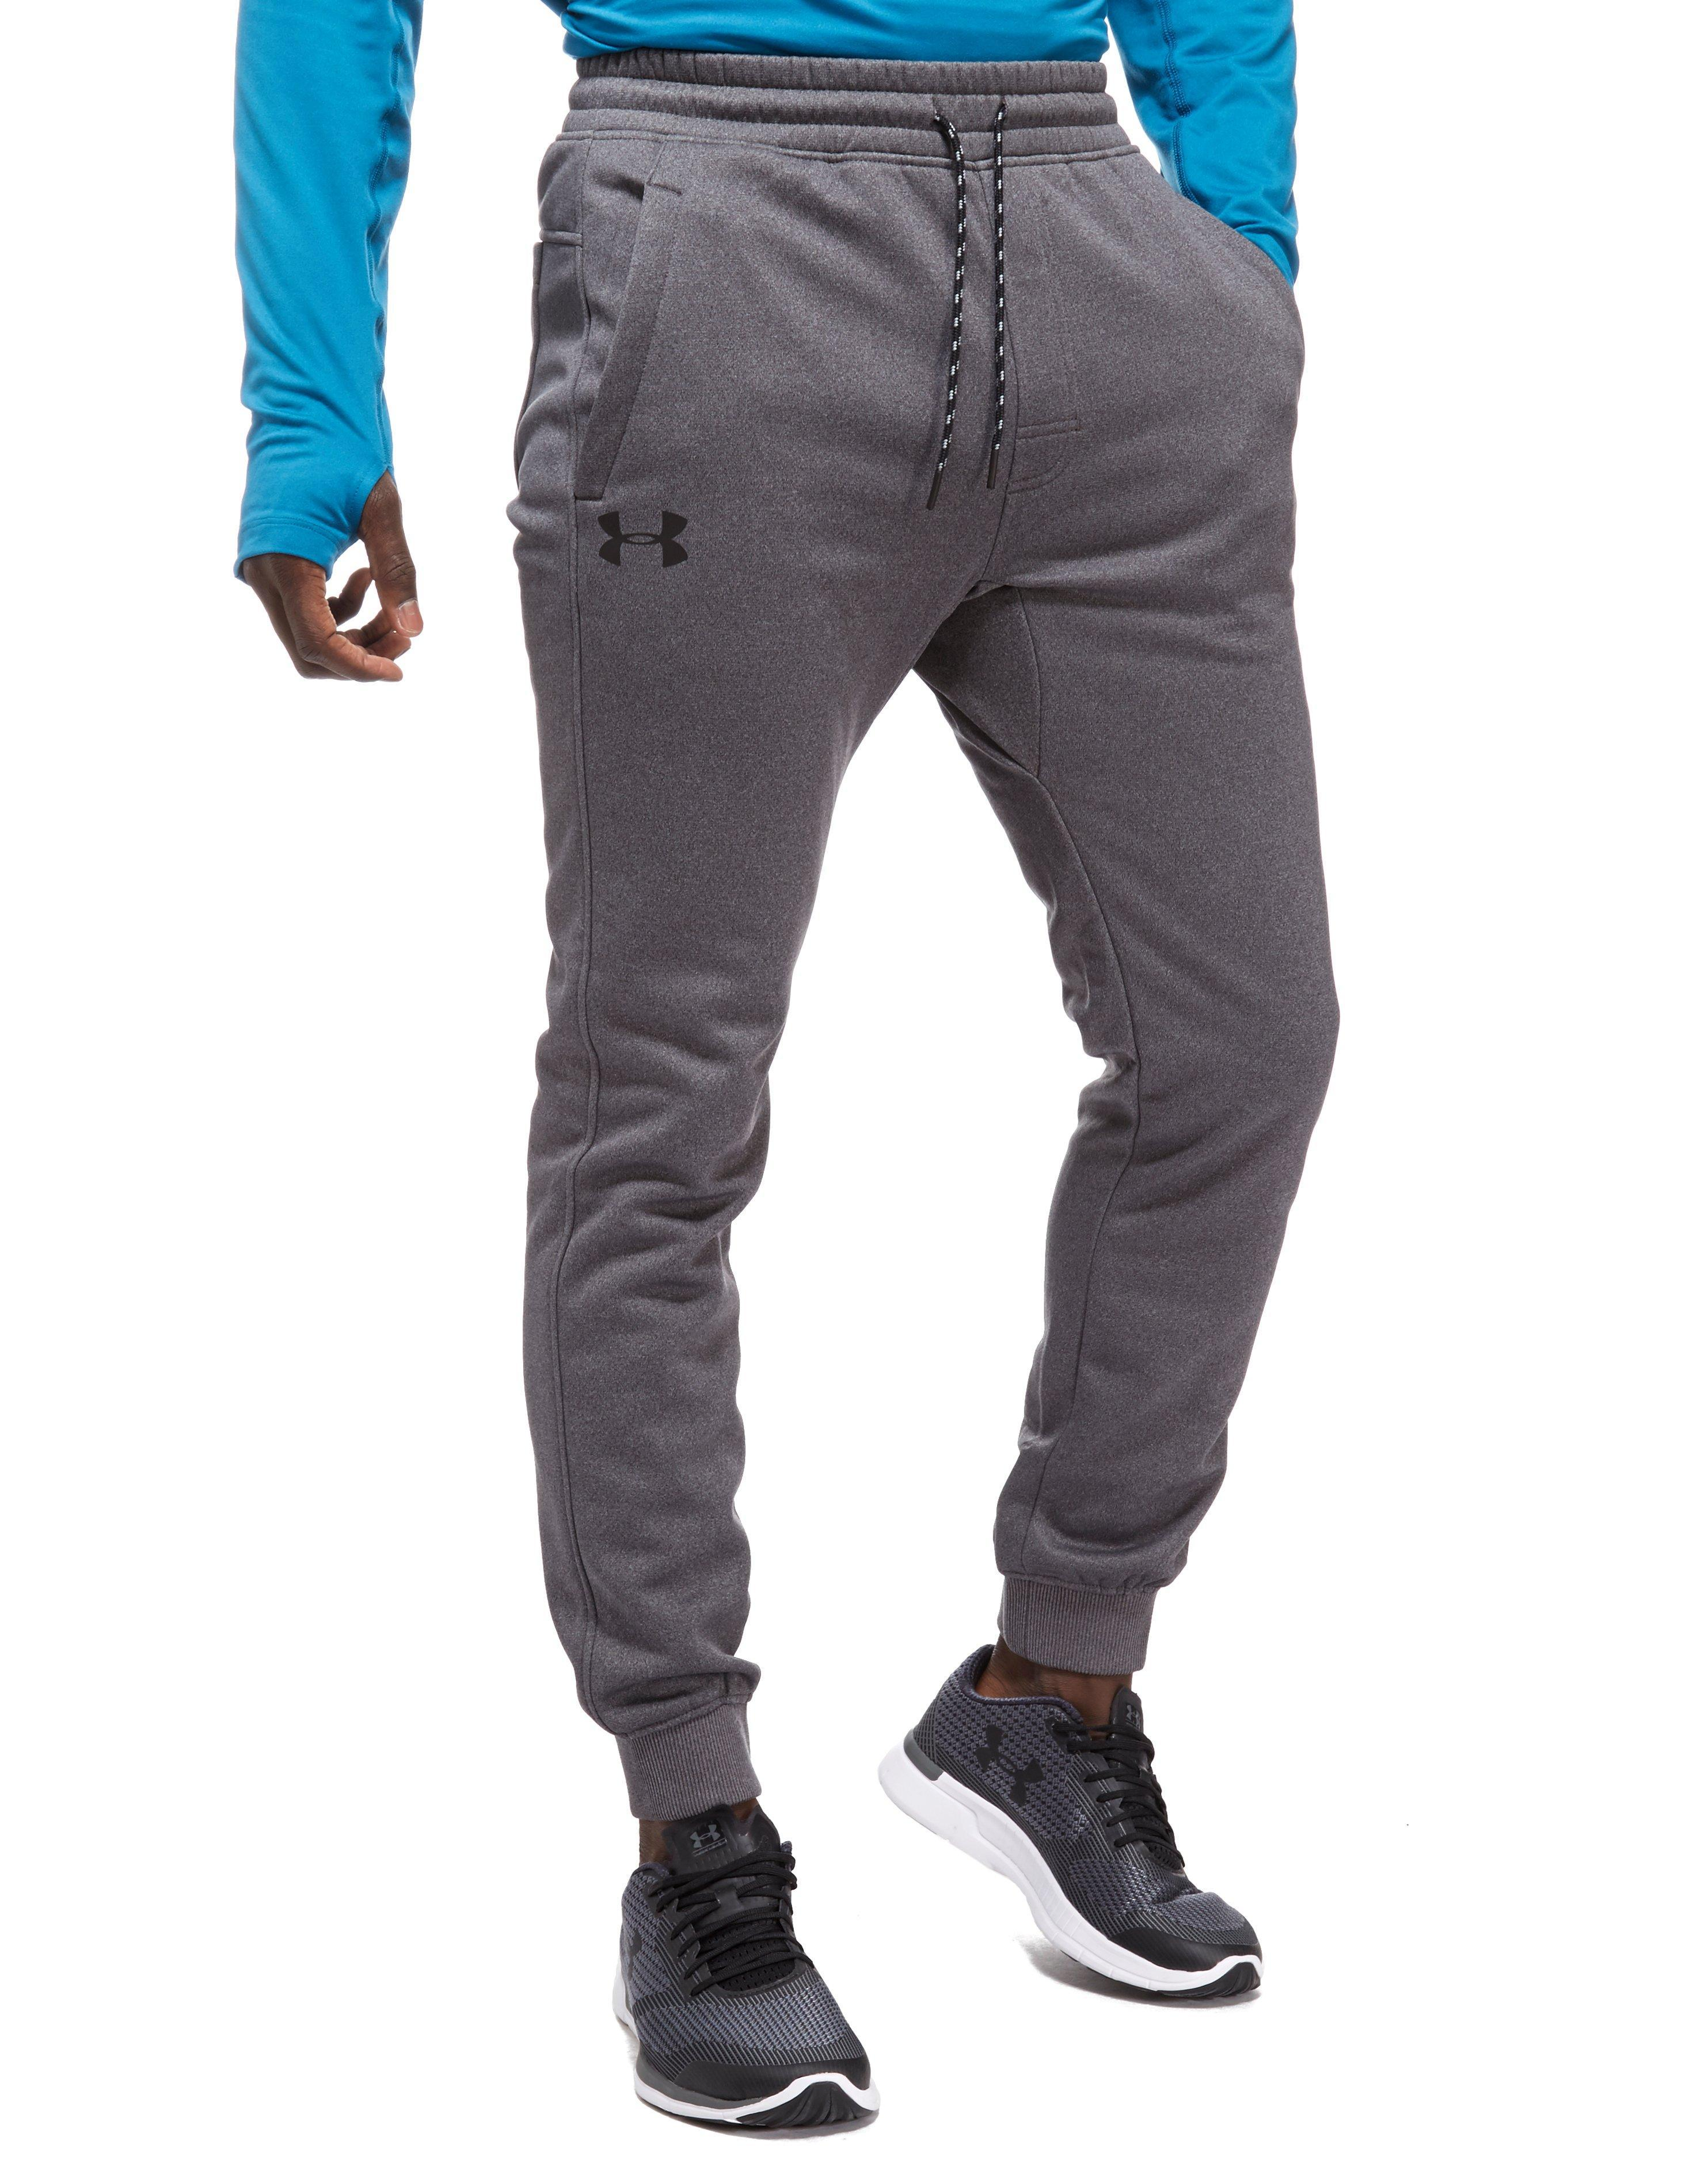 Lyst - Under Armour Storm Icon Pants in Gray for Men 244f89b48ab